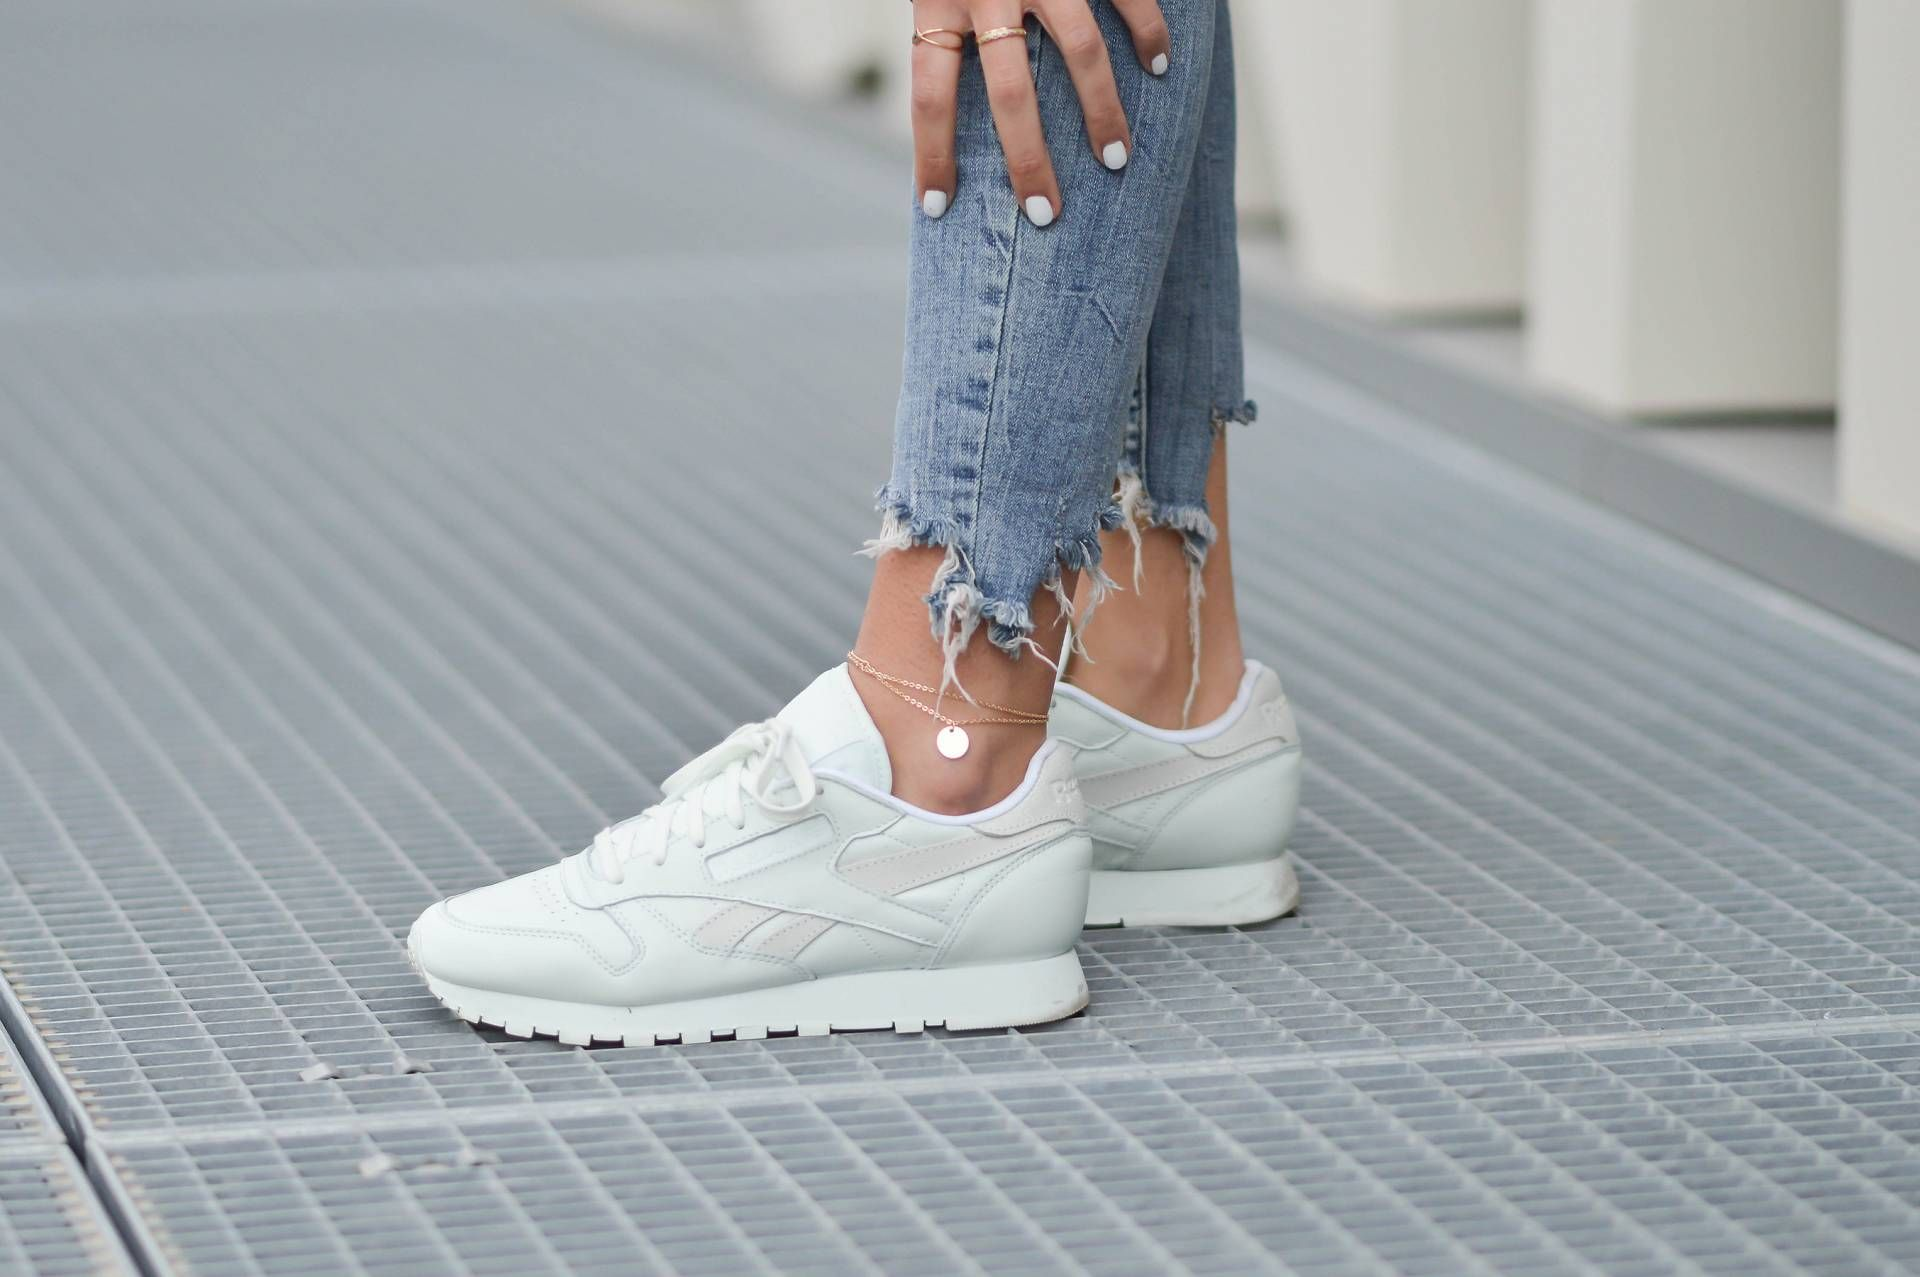 Pin by cy b on SHOES ✨ | Reebok, Sneakers, Shoes